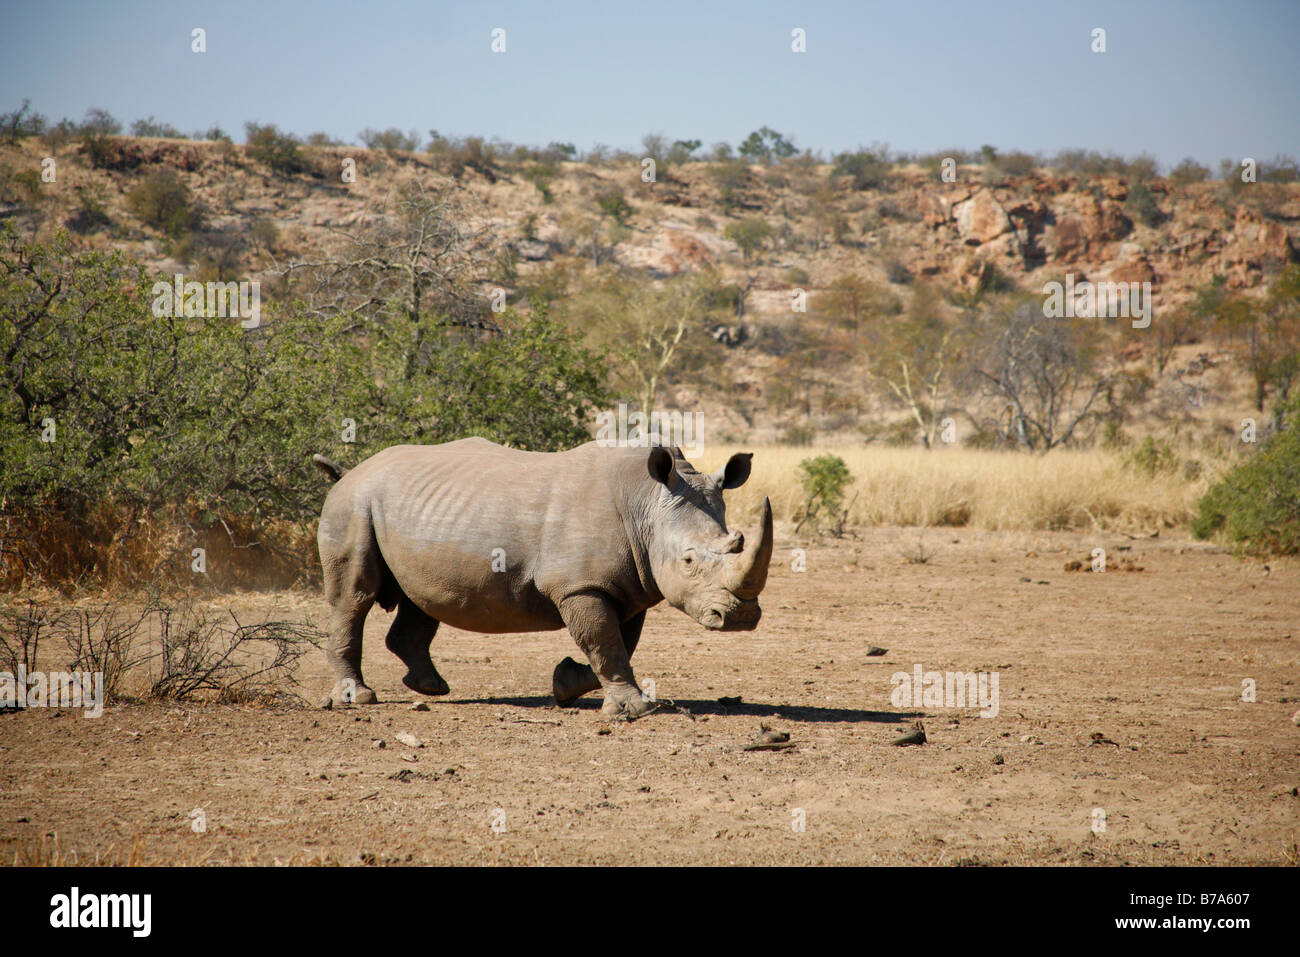 Scenic view of a white rhino walking in an arid environment - Stock Image